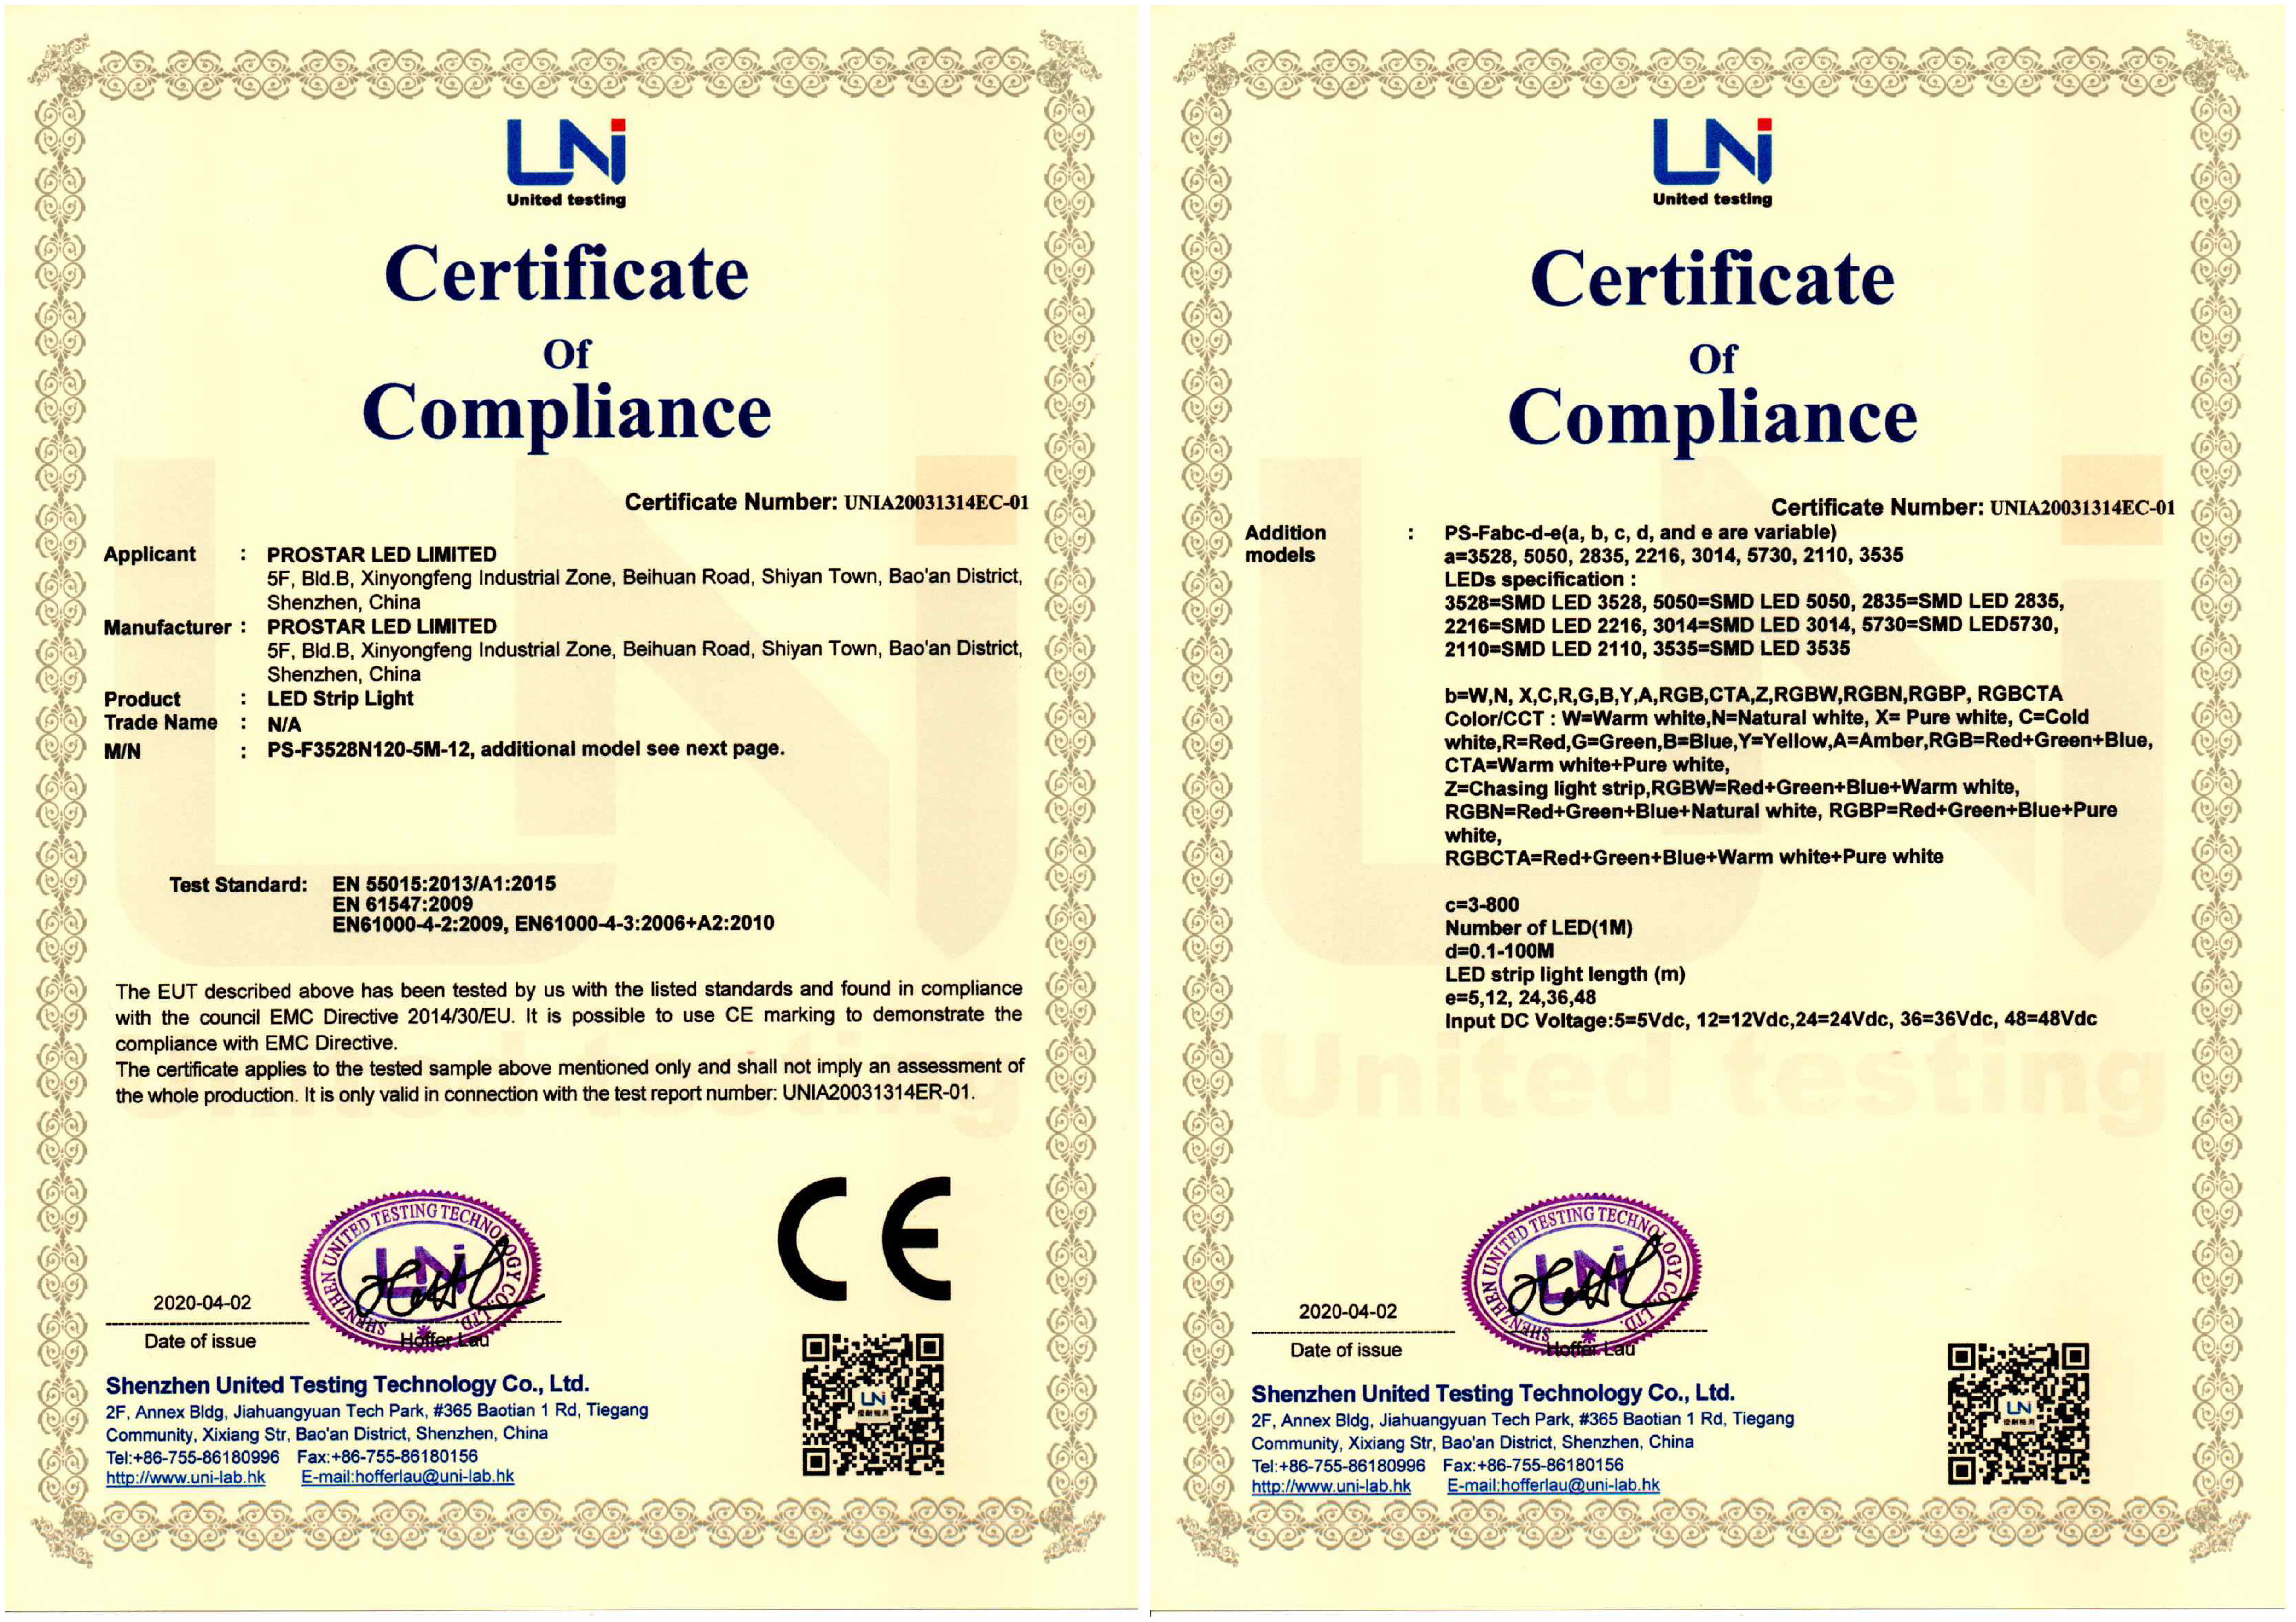 LED STRIP LIGHT EMC/LVD/RoHS2.0 Certificates Update Completed